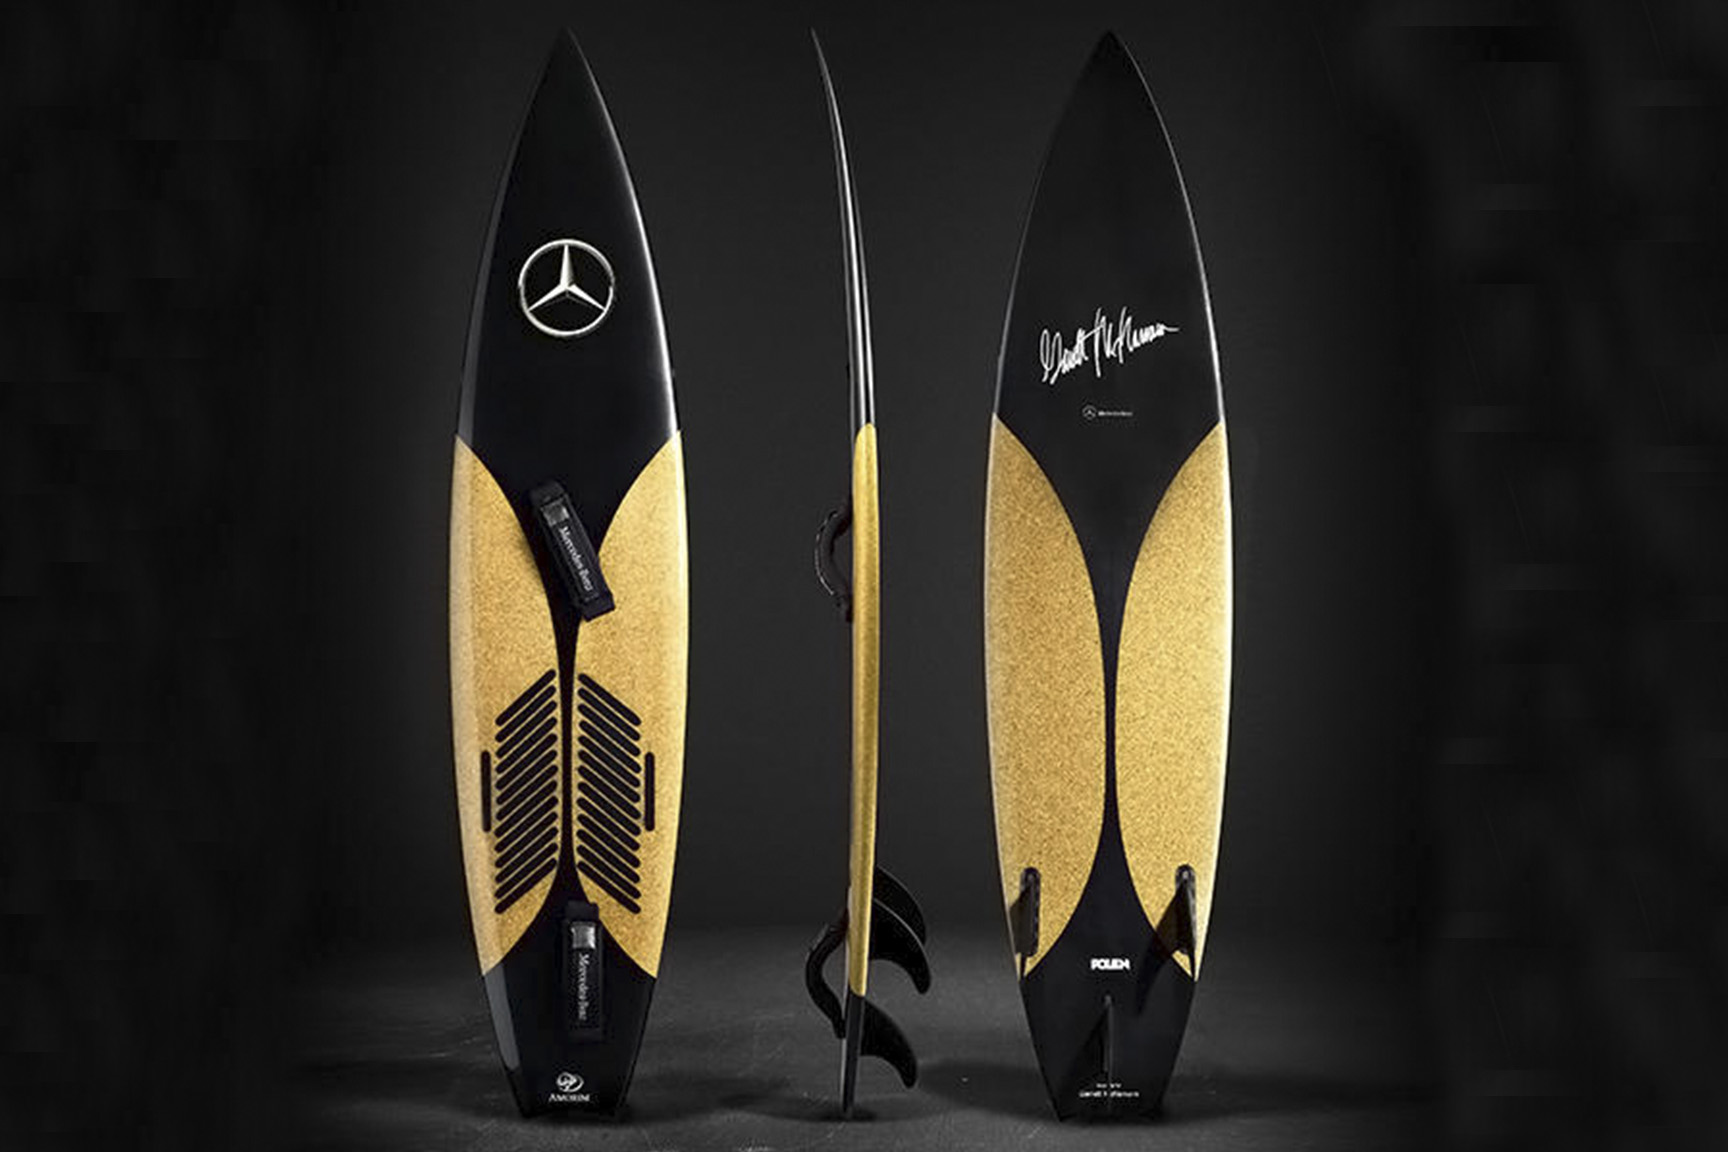 MERCEDES CORK SURFBOARD BY POLEN & AMORIM